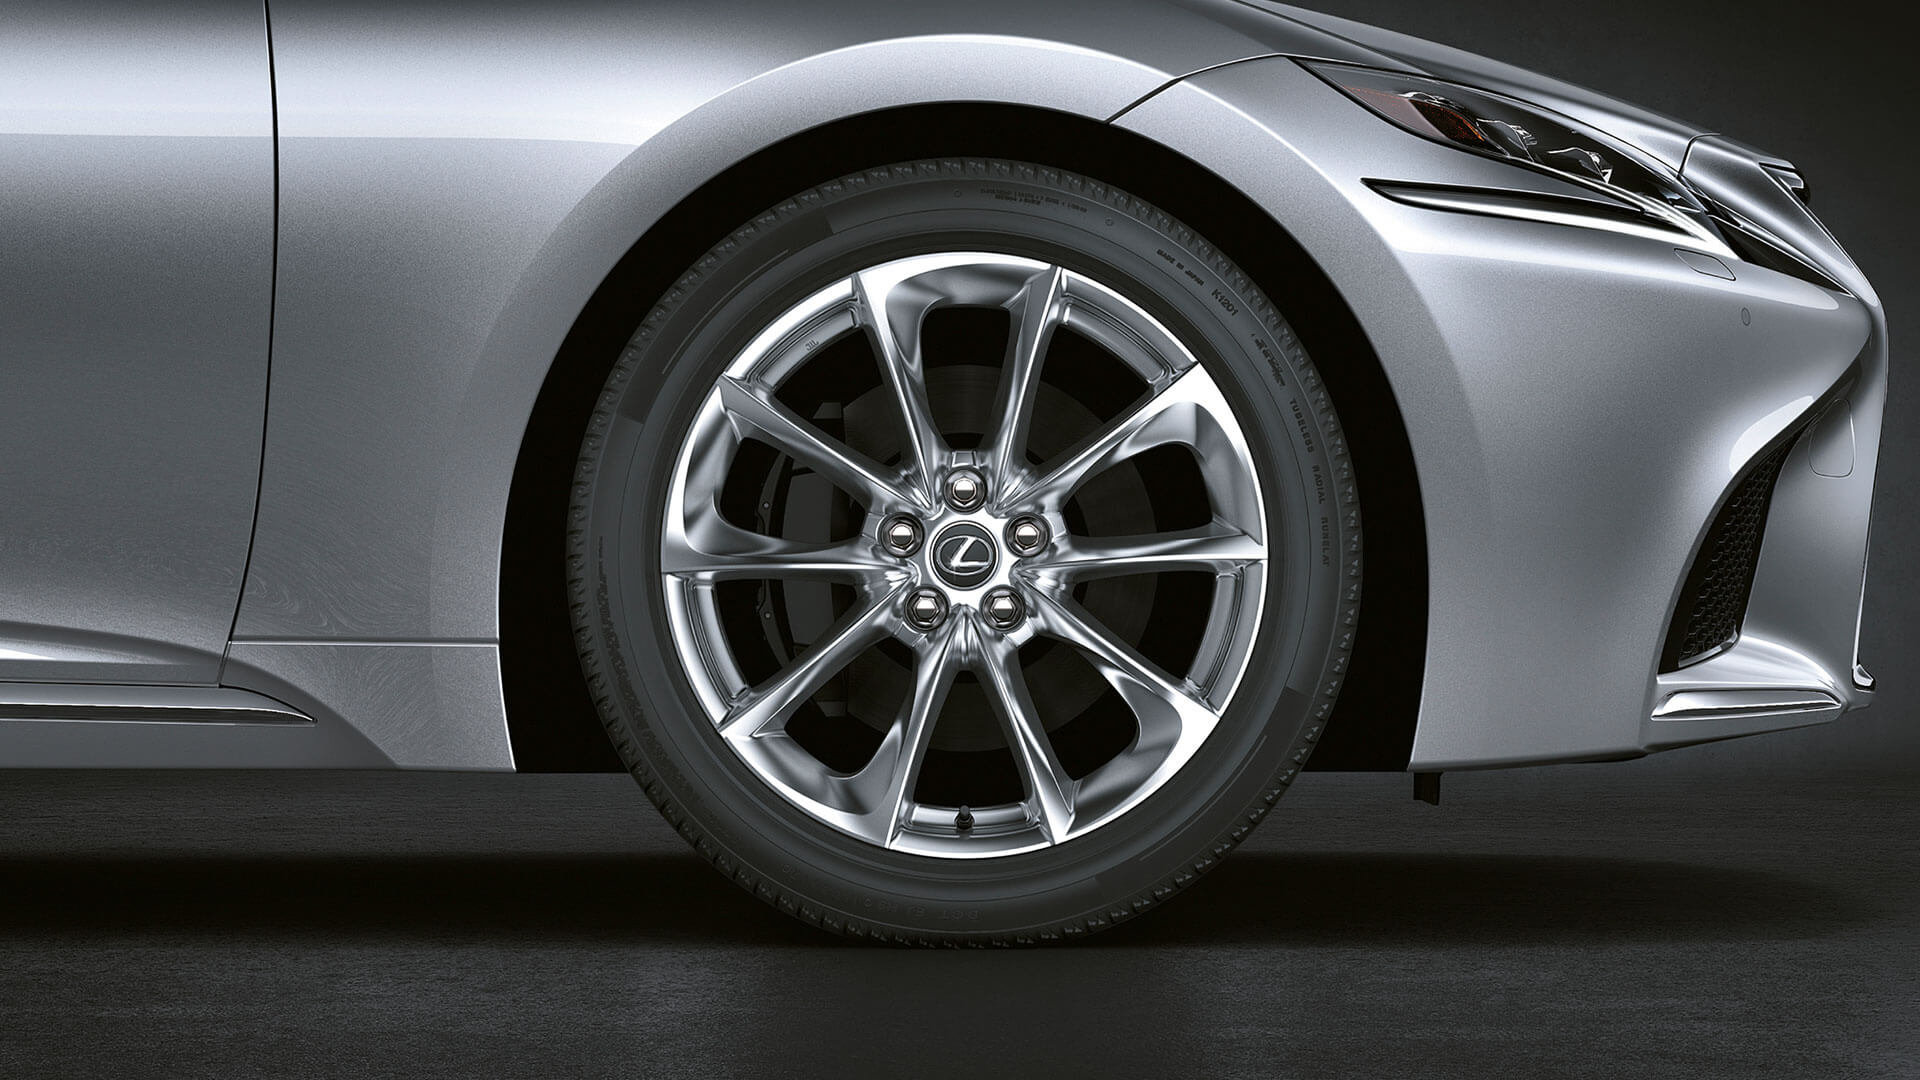 2018 lexus ls features 20 forged alloy wheels